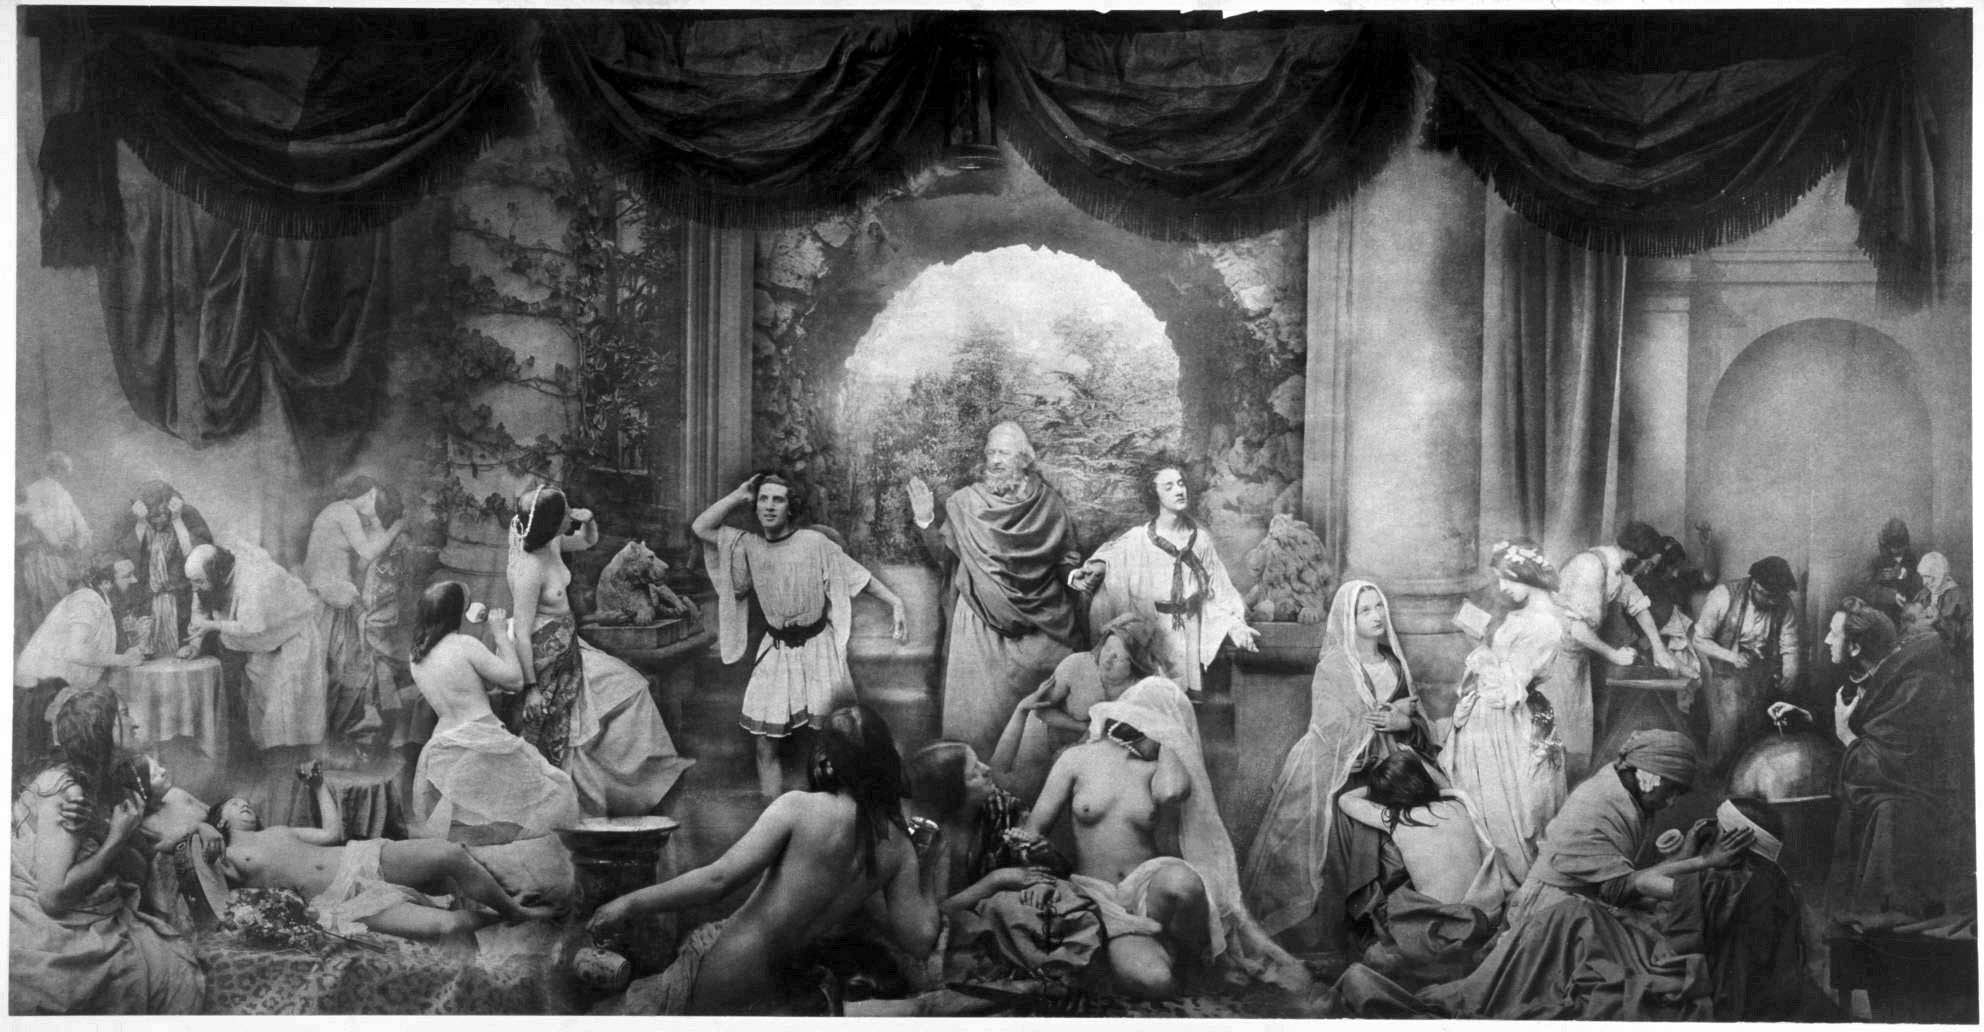 Oscar Rejlander, The Two Ways of Life. Allegorical composition made using multiple negatives, 1857. Techniques of this kind were the Victorian equivalent of photoshop.